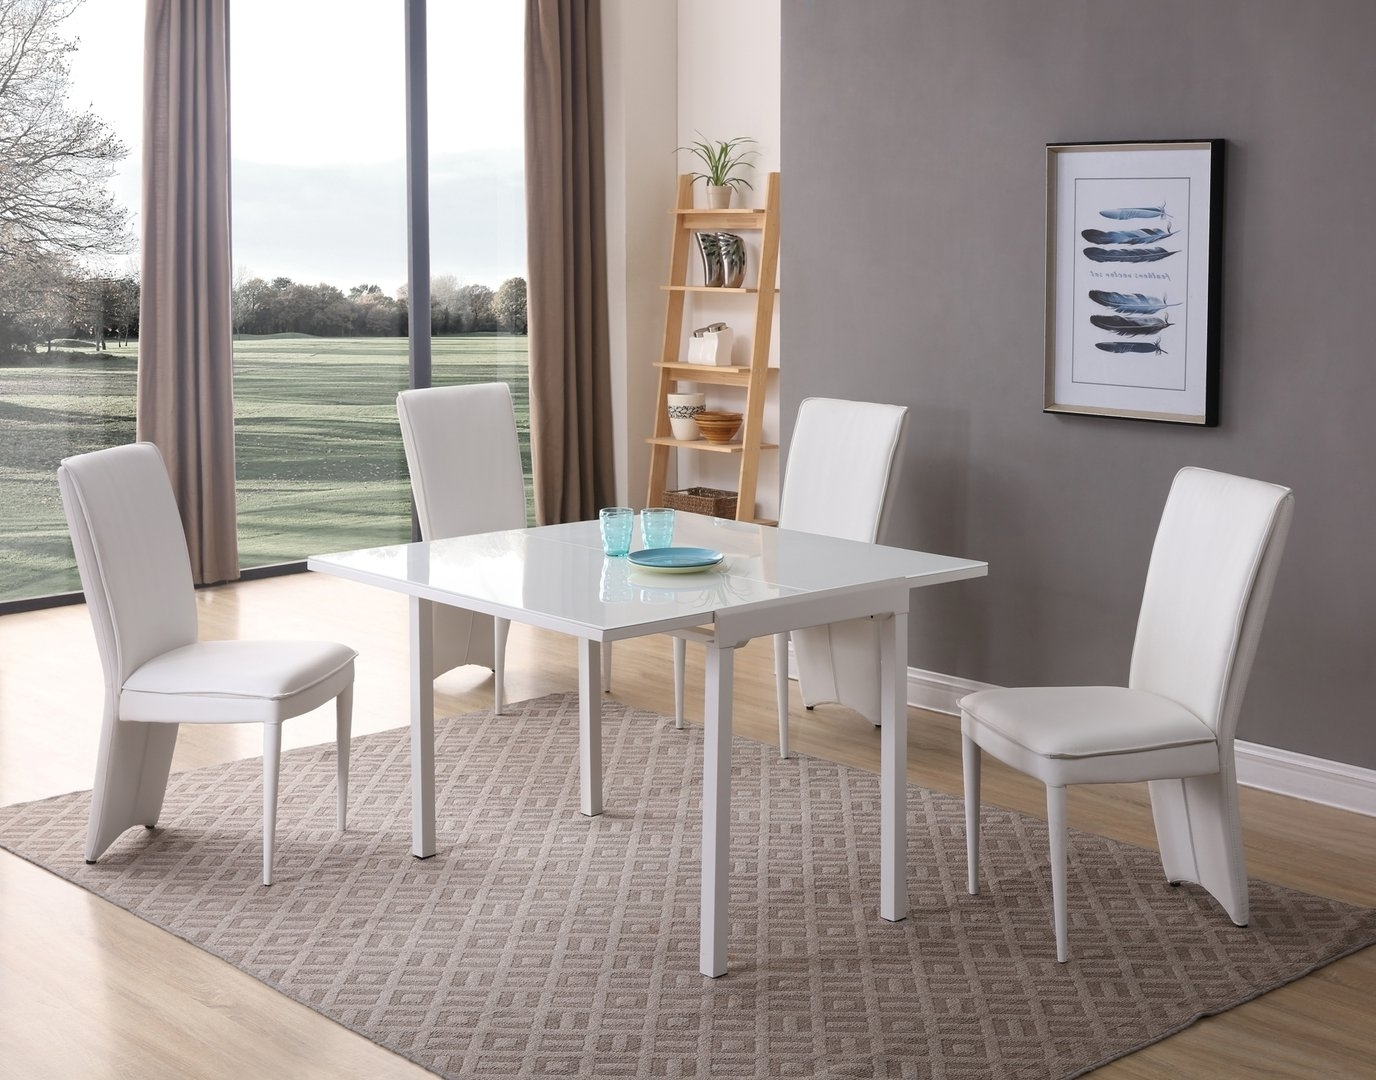 Well Liked Glass Dining Tables White Chairs Intended For Matt White Glass Dining Table And 4 Chairs – Homegenies (View 25 of 25)